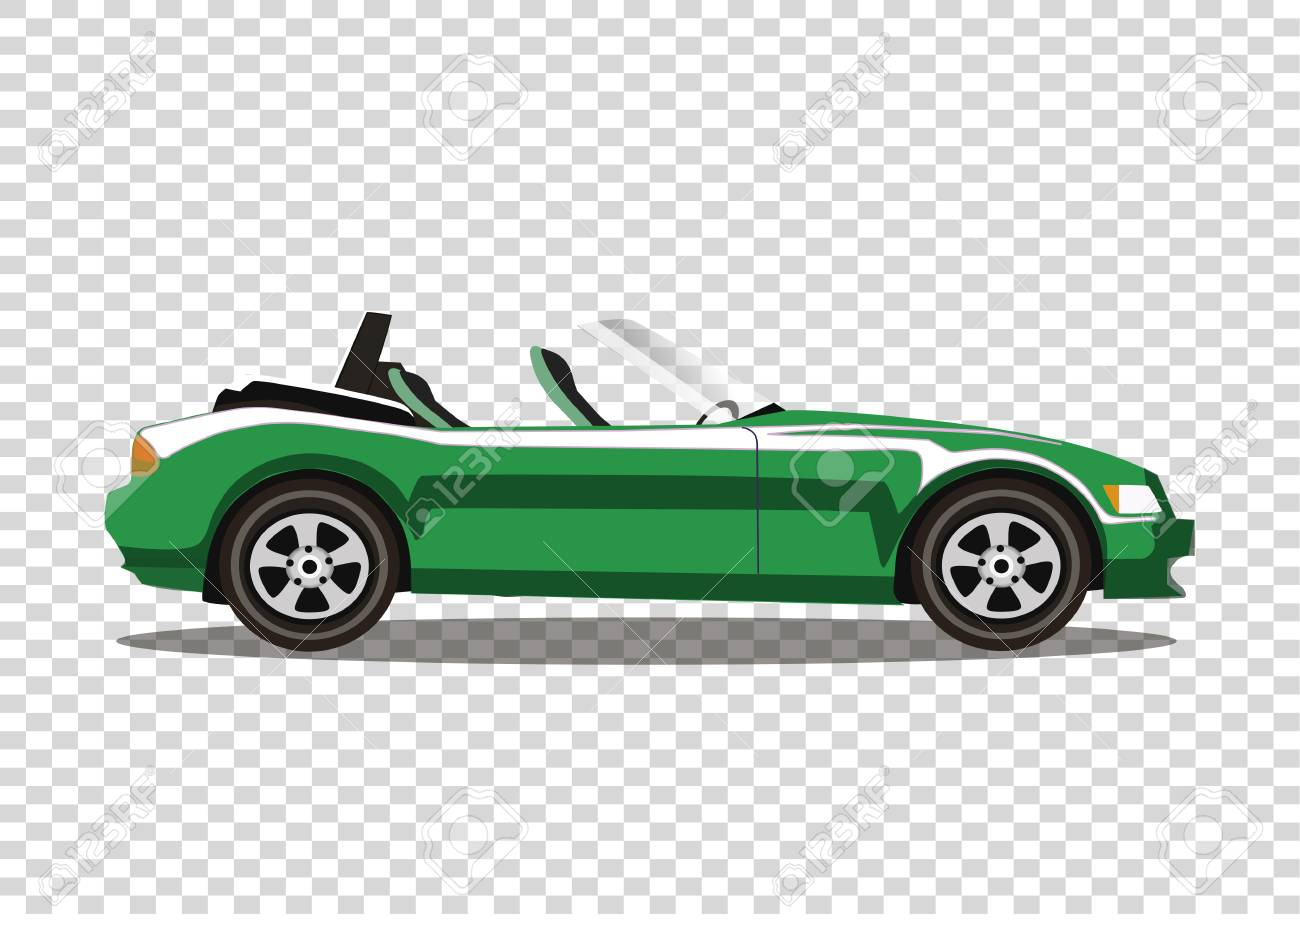 Green Modern Cartoon Cabriolet Car Isolated On Transparent Background Royalty Free Cliparts Vectors And Stock Illustration Image 90401576